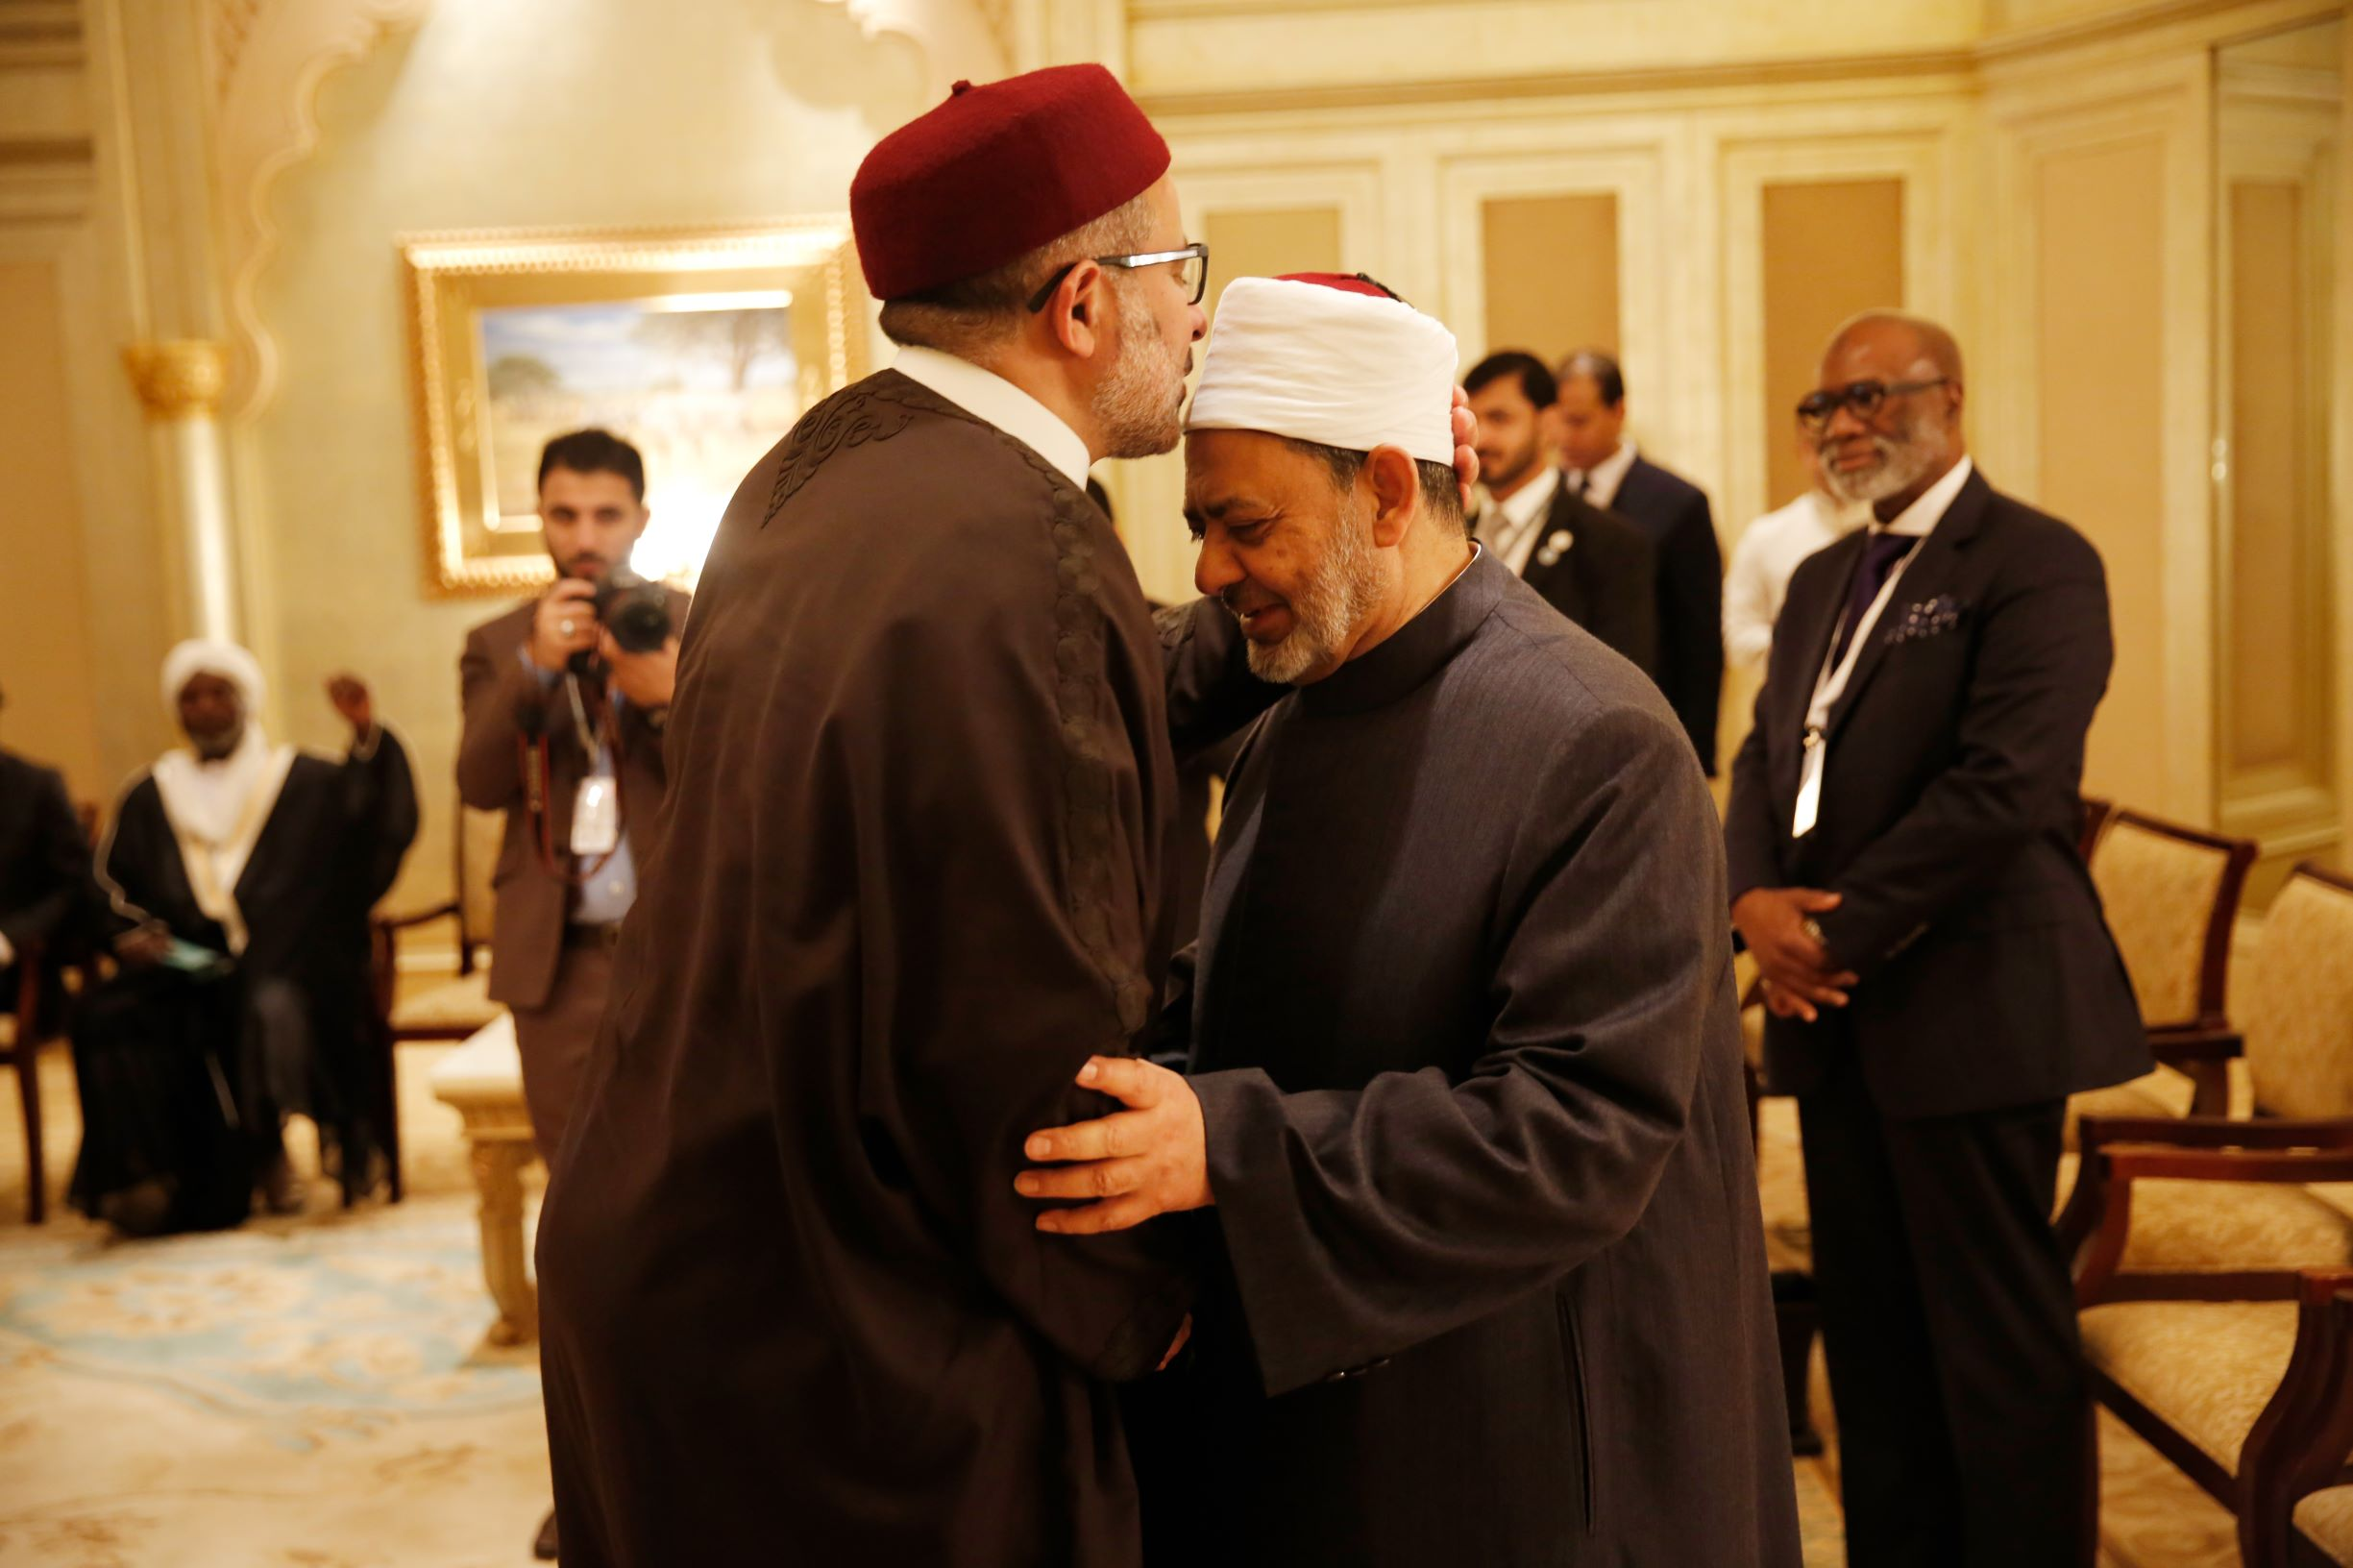 'we must confront hardliners with isolationist ideas with courage,' says grand imam of al azhar  2